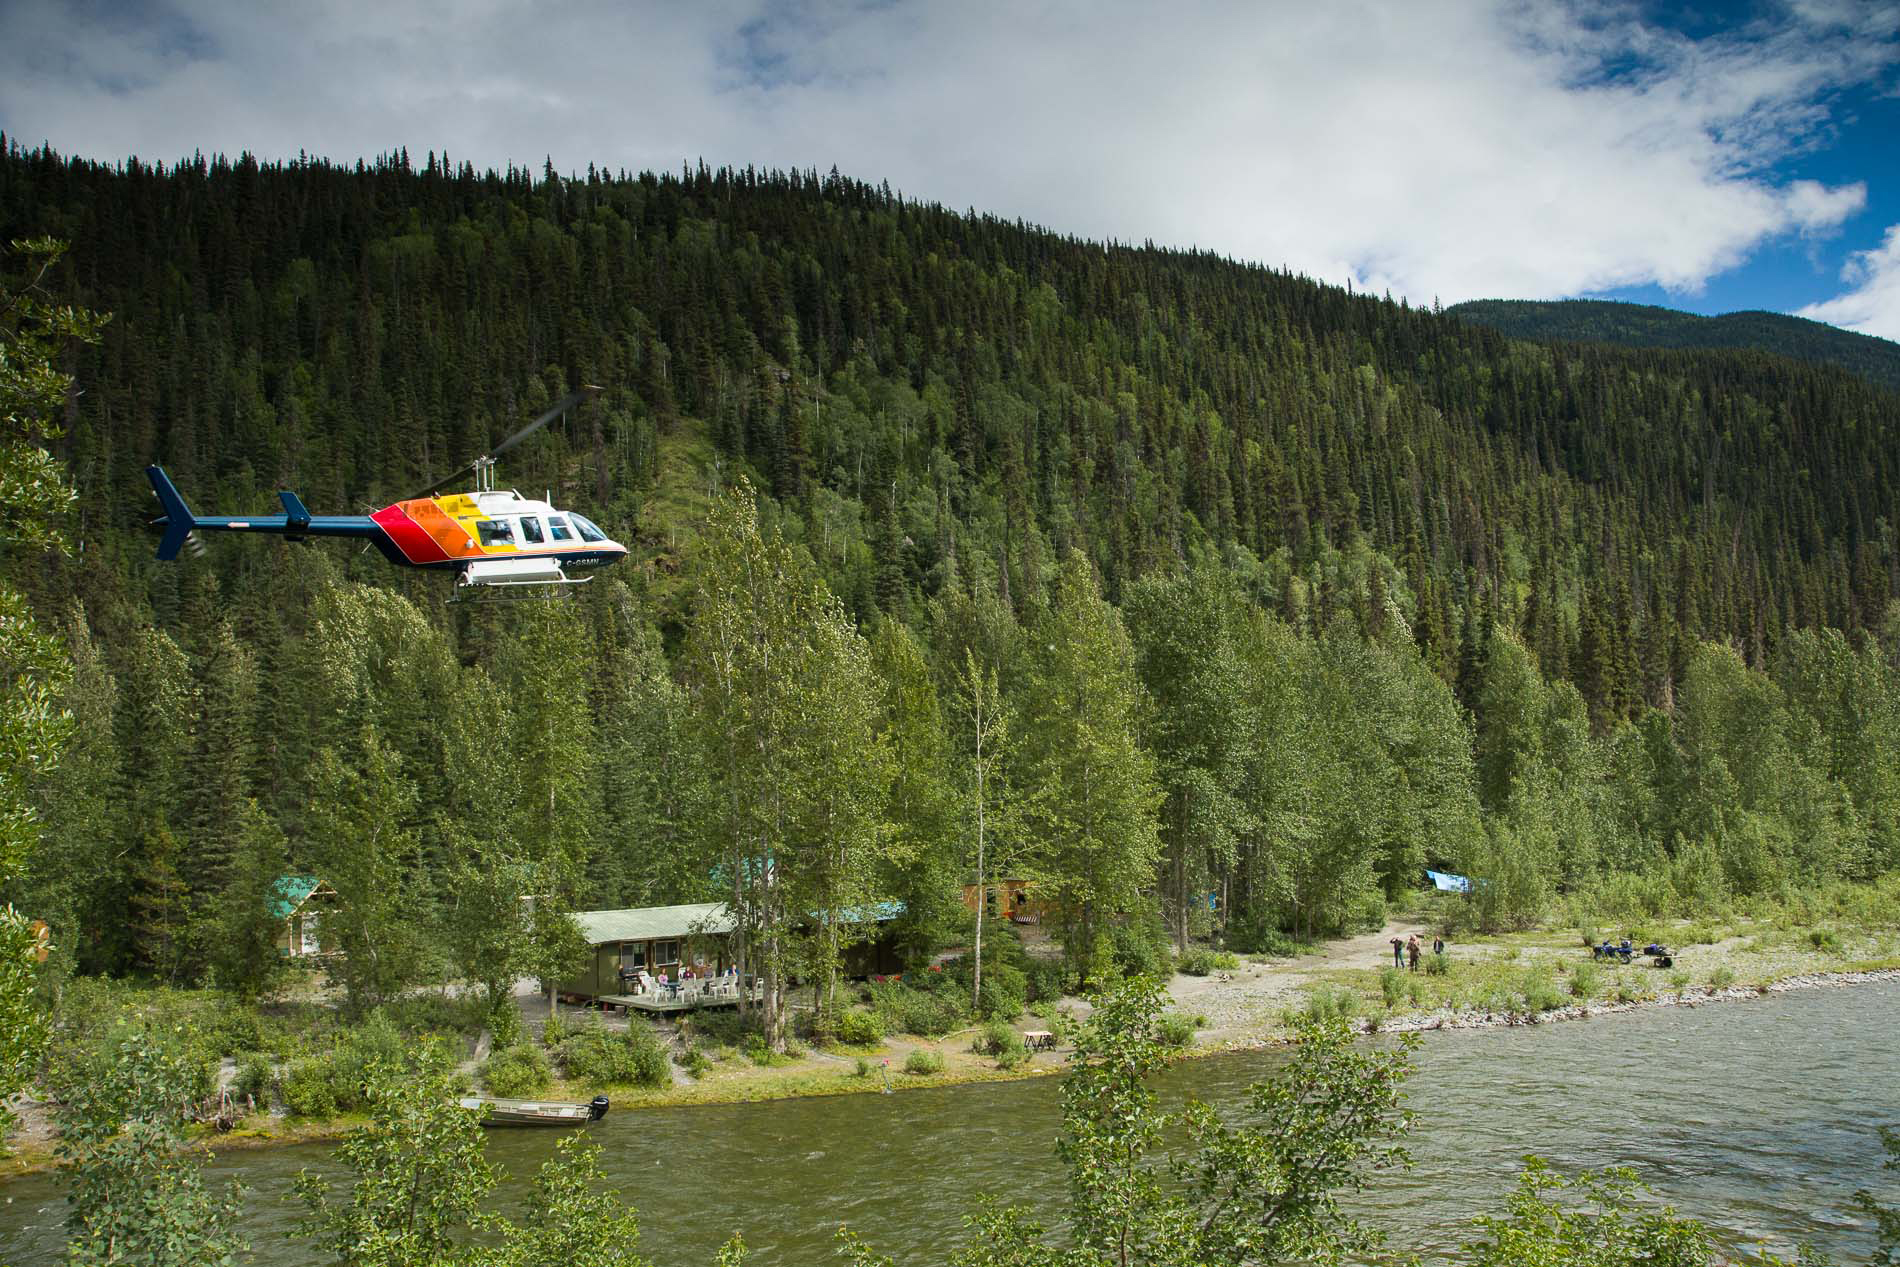 Another helicopter of anxious photography workshop attendees is arriving at the remote camp in northern BC... the location where I run my Grizzly Bear trips too.